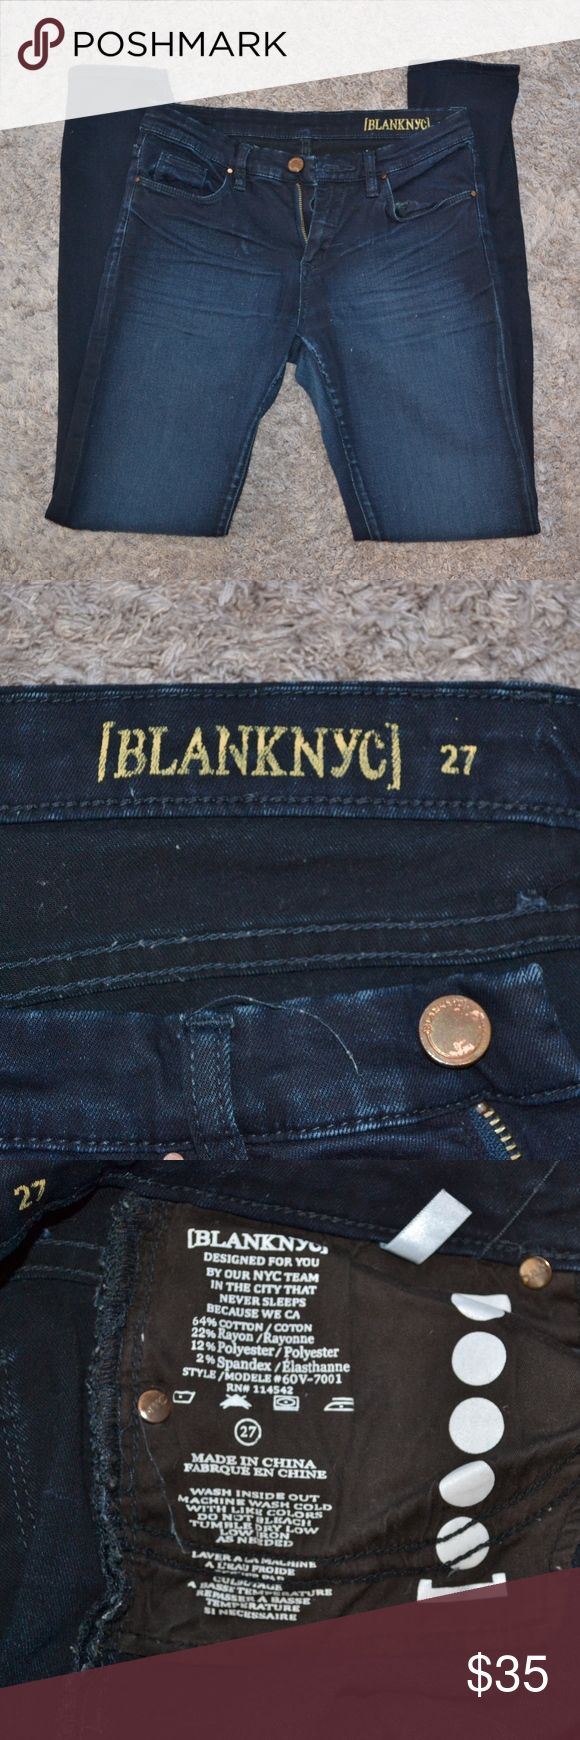 """BLANK NYC Dark Ink Skinny Jeans EUC. Worn <3 times.  Very dark blue color.  Super stretchy and comfortable.    31"""" inseam. 14"""" across when laying flat. 64% cotton. 22% rayon. 2% spandex. Blank NYC Jeans Skinny"""